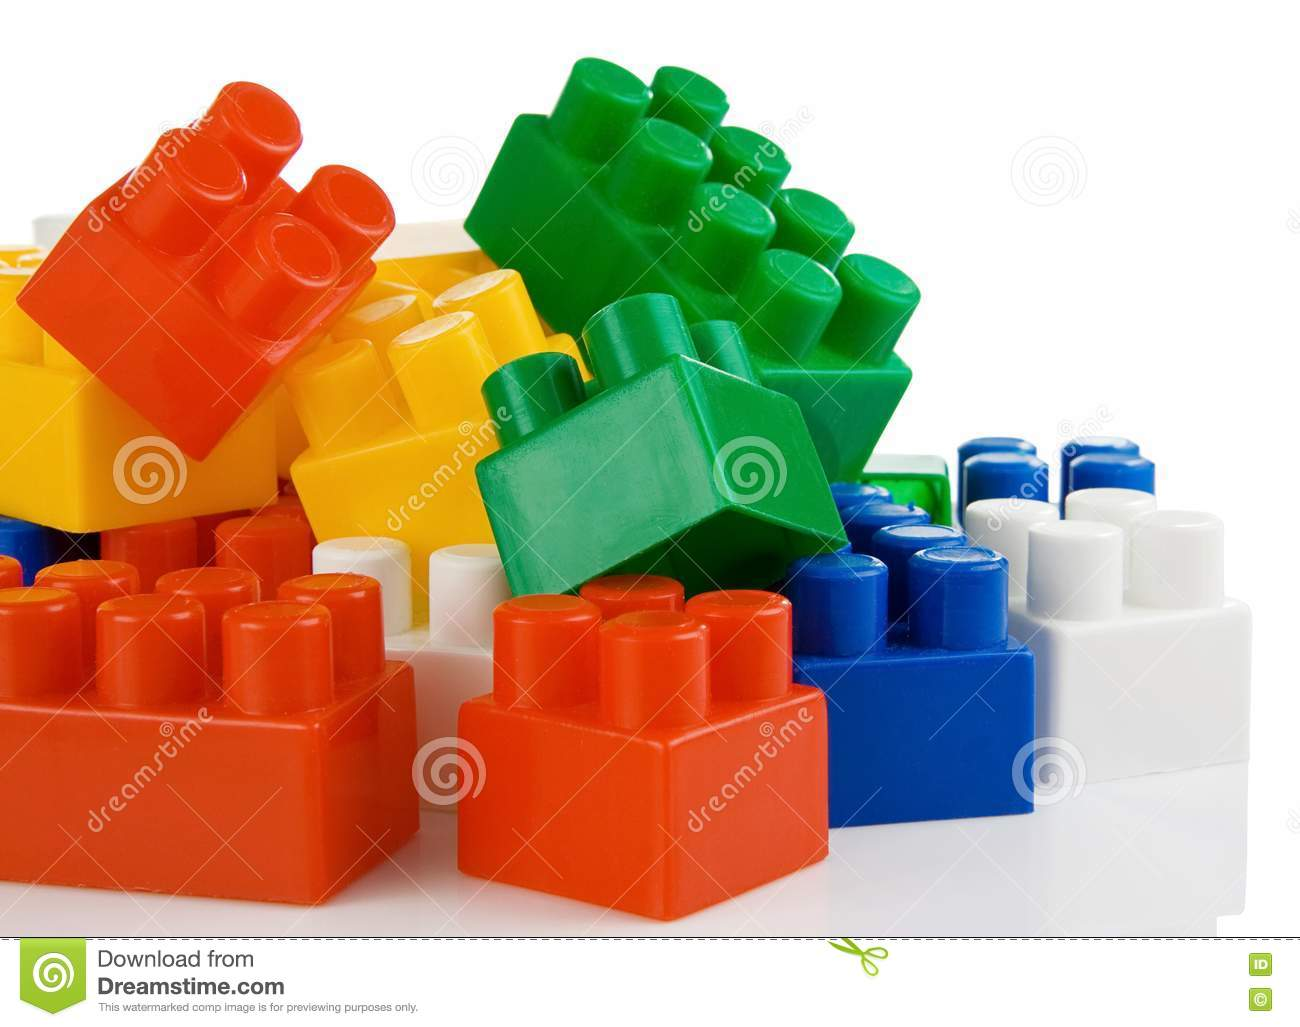 Colorful Plastic Toys Bricks Isolated On White Royalty Free Stock Photo Image 18406905